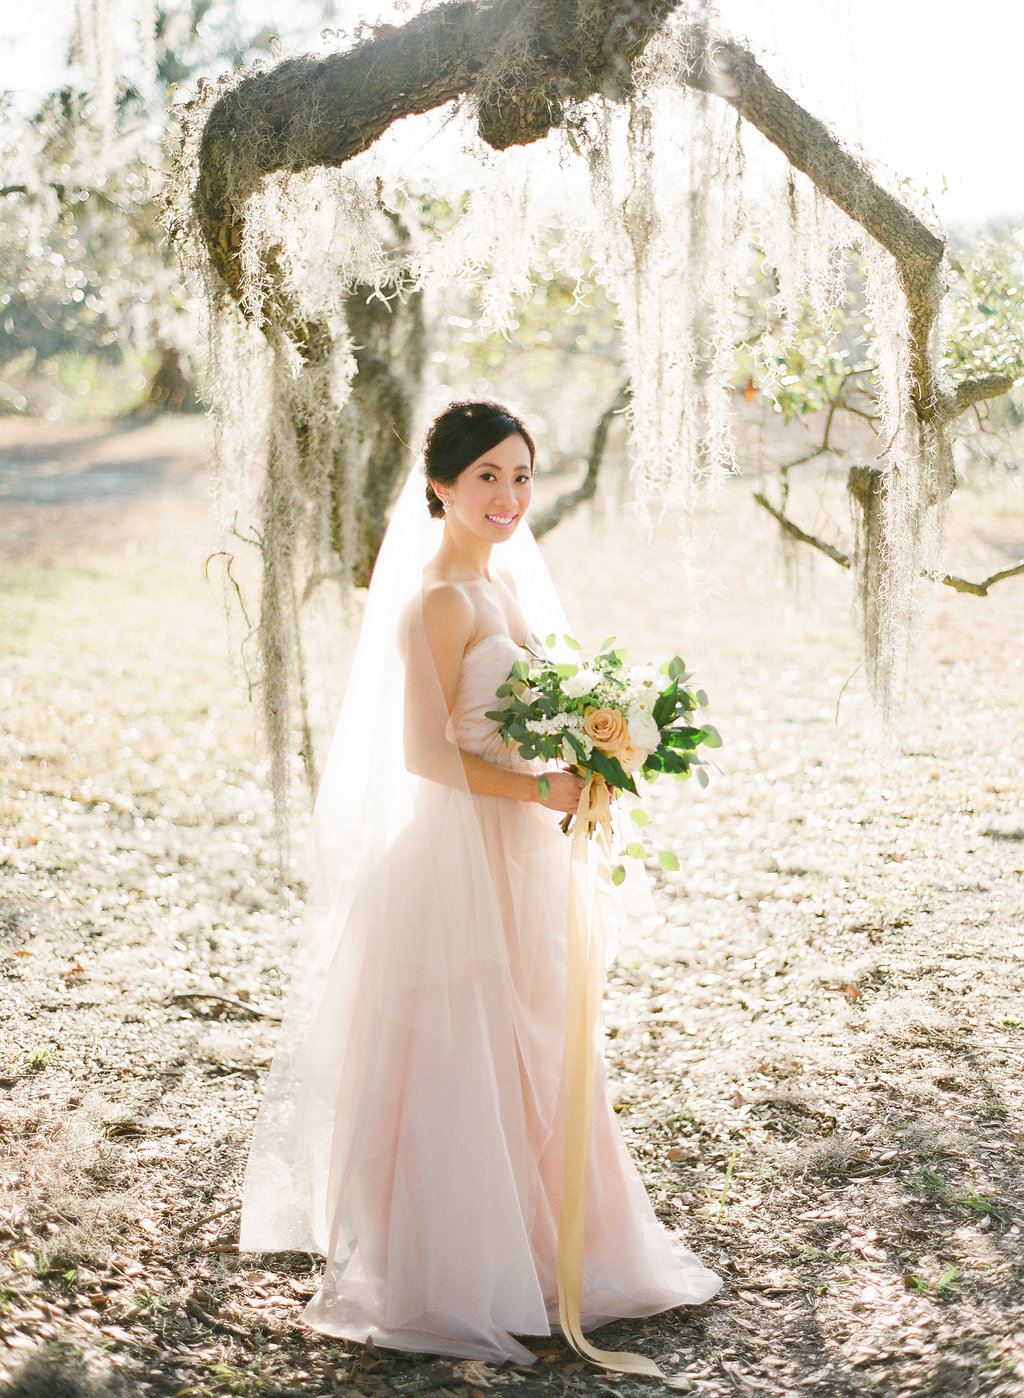 the-happy-bloom-design-studio-south-wormsloe-plantation-wedding-sarah-seven-blushing-ivory-and-beau-bridal-boutique-savannah-wedding-dresses-savannah-bridal-boutique-savannah-weddings-savannah-wedding-planner-savannah-event-planner-16.jpg